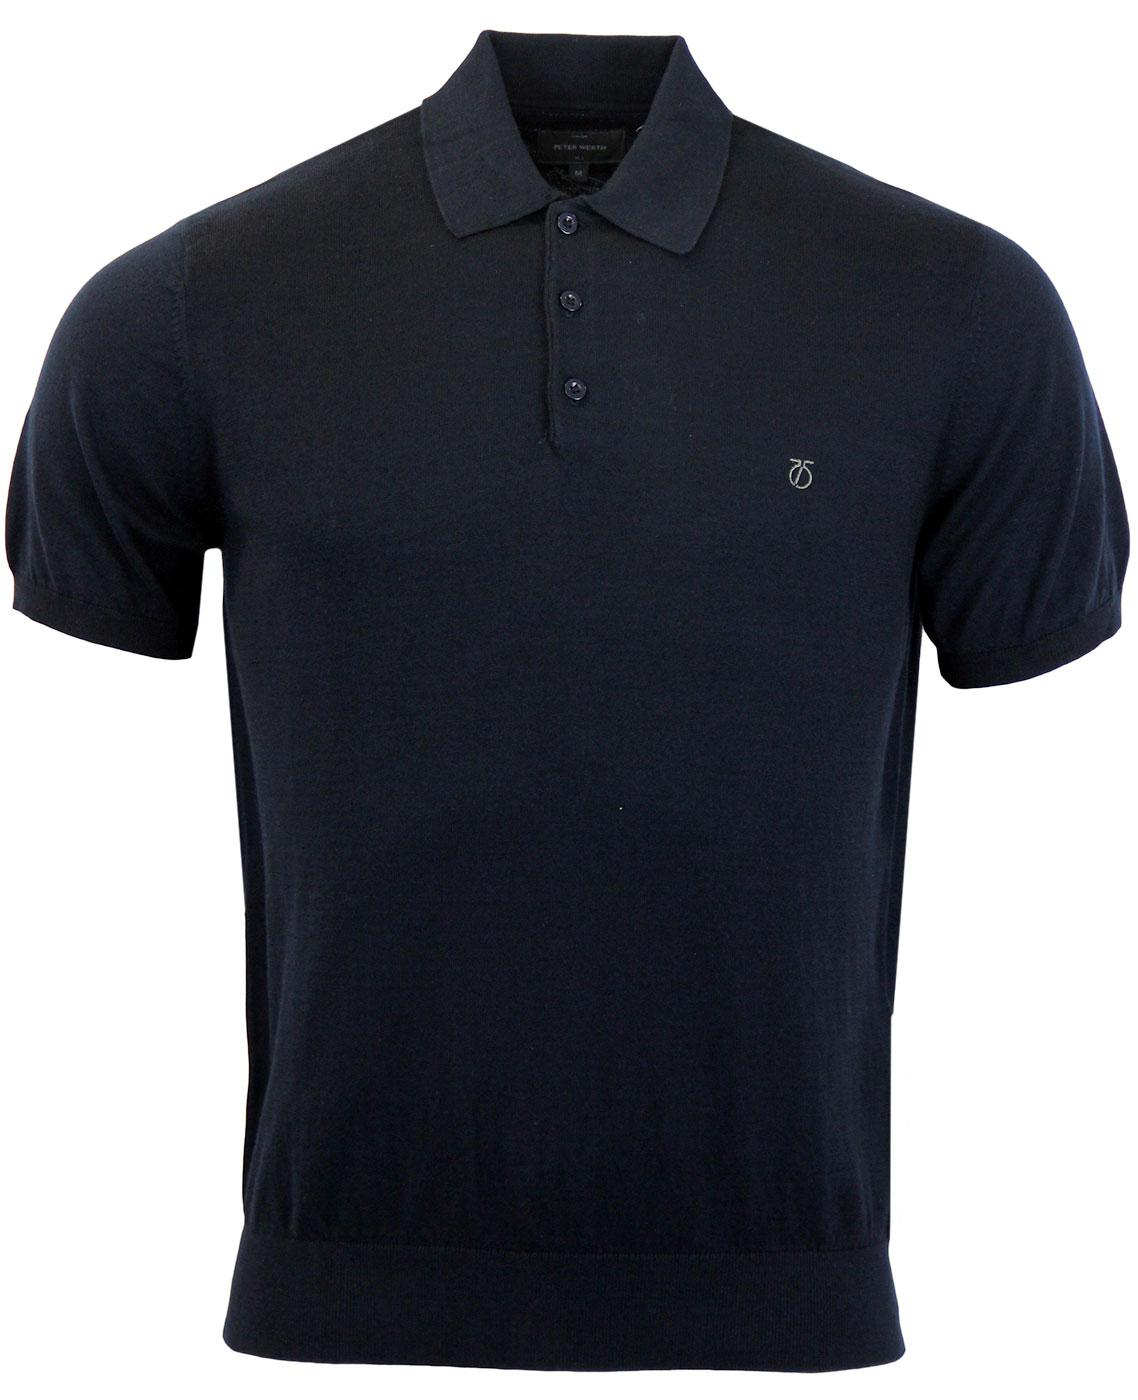 PETER WERTH Elements Brooksy Mod Cotton S/S Polo